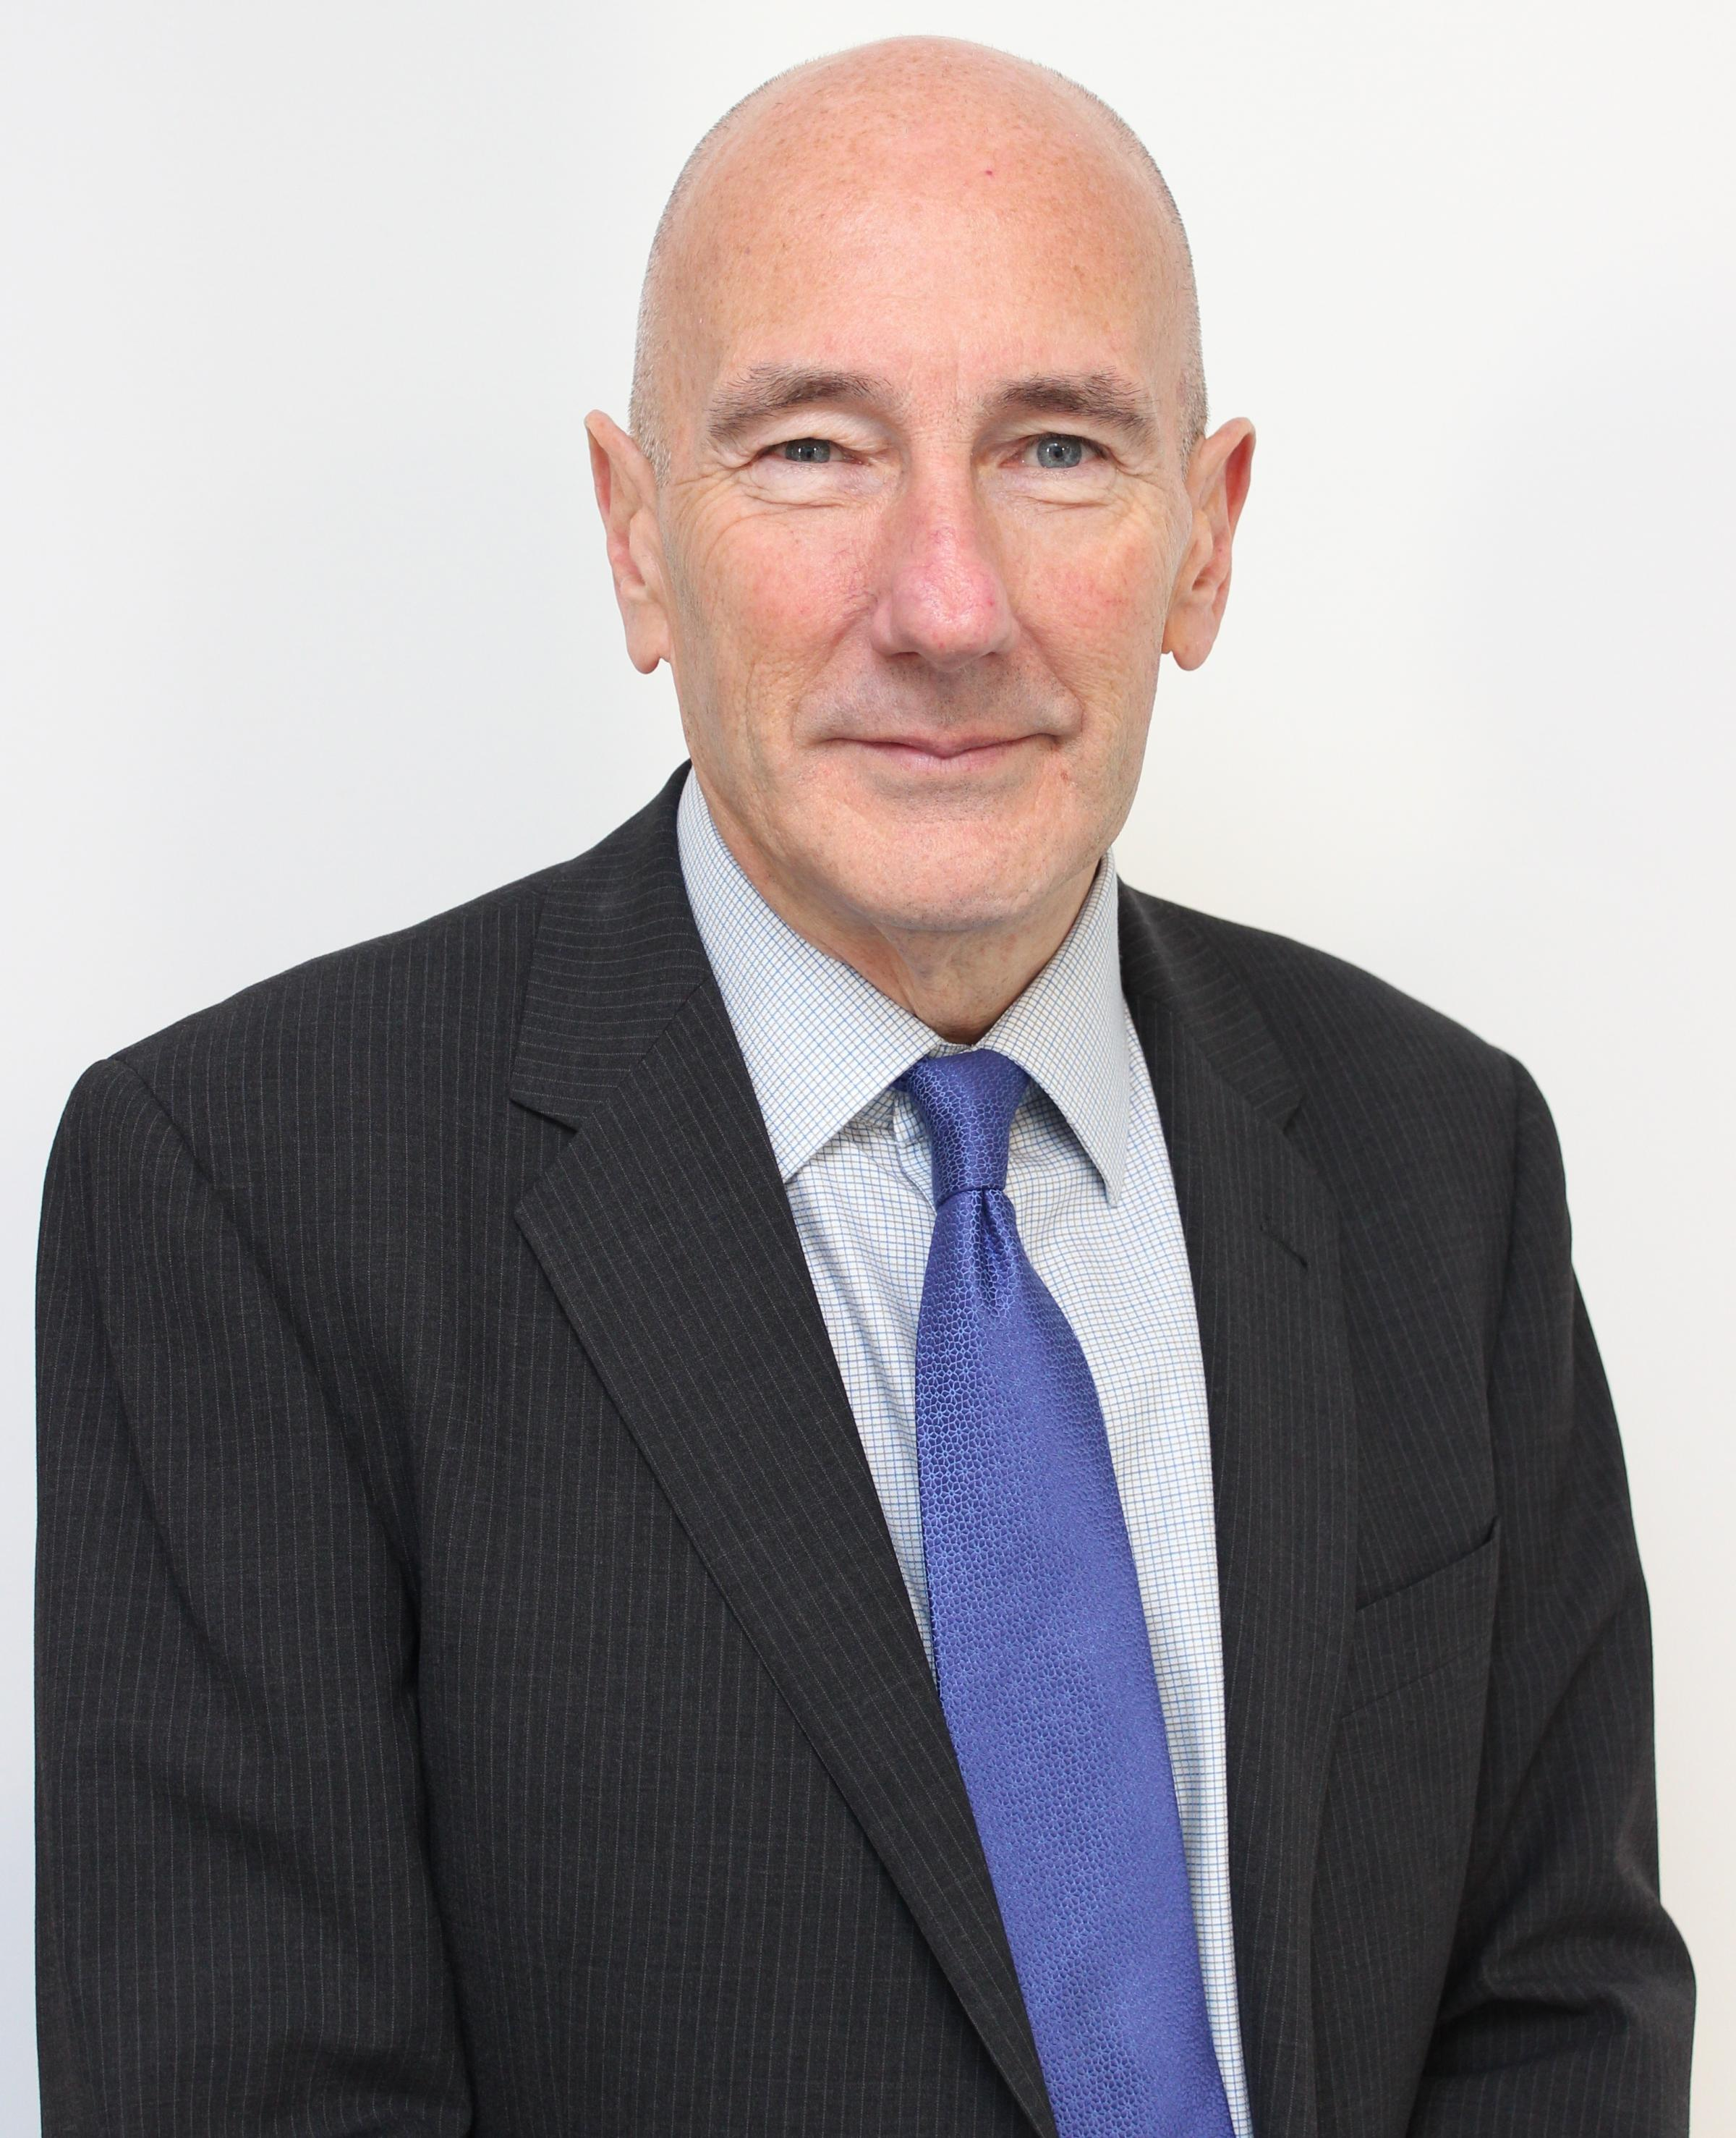 Steve Erskine, the new chair of Hampshire Hospitals NHS Foundation Trust